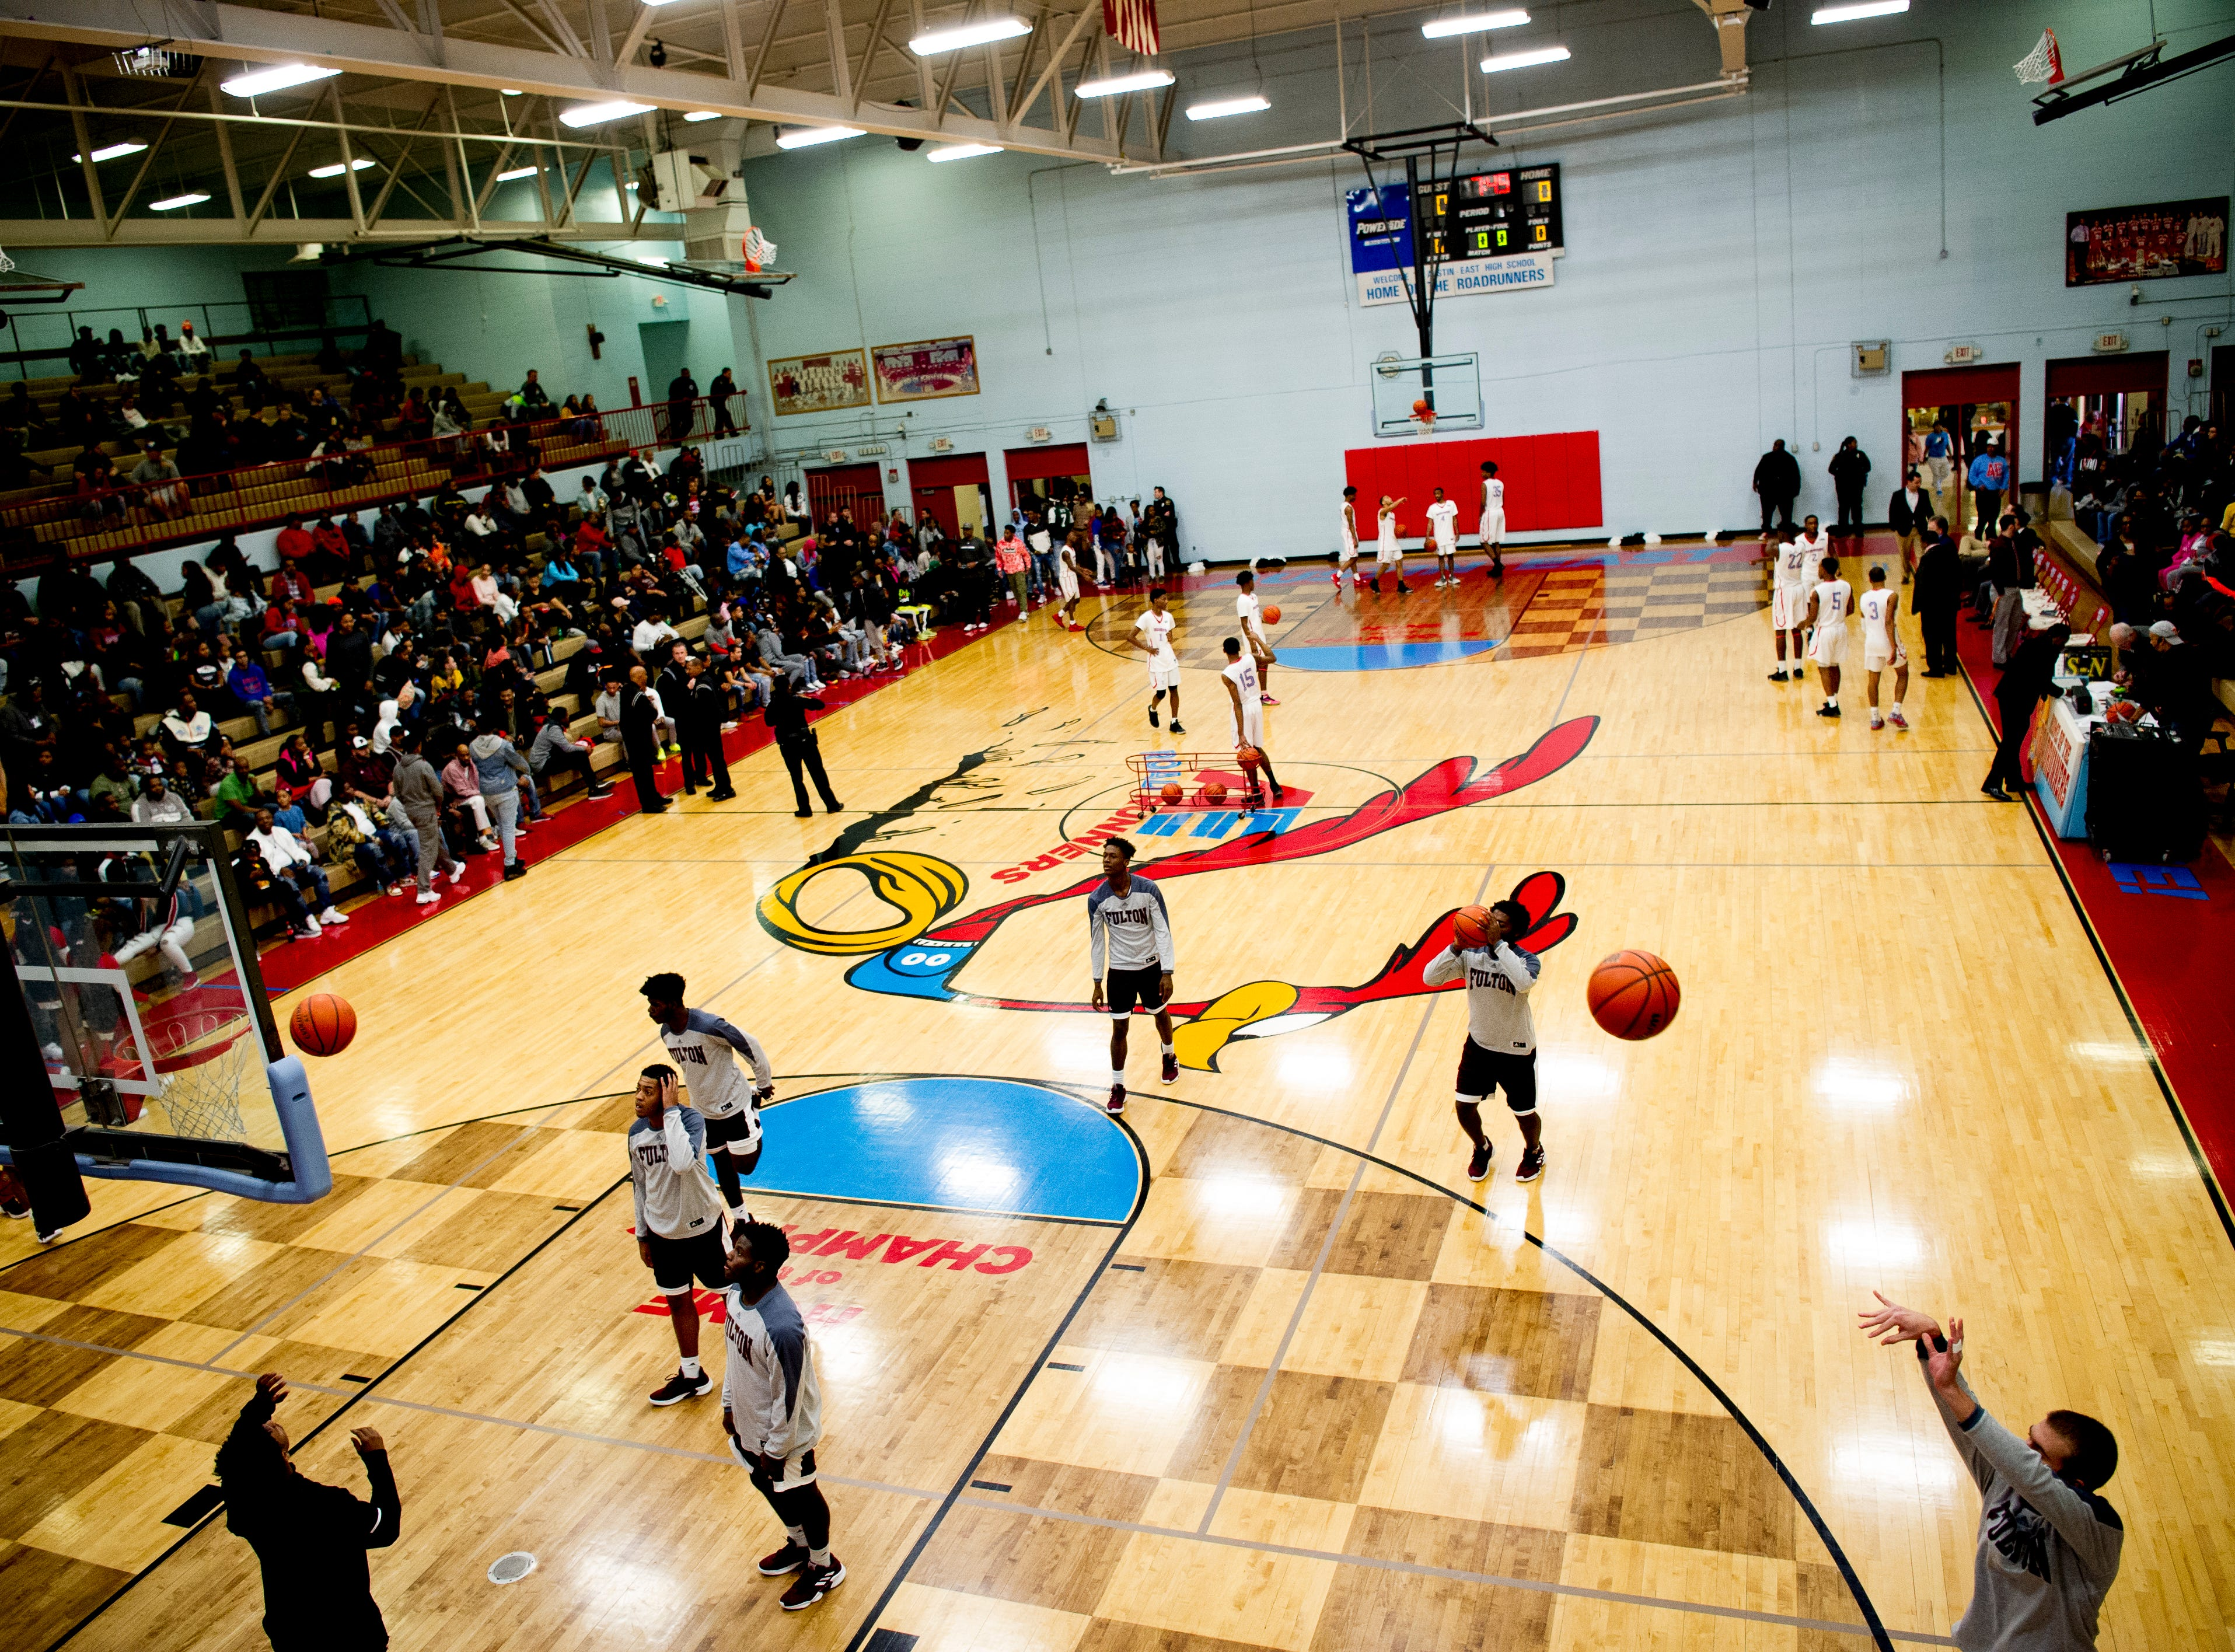 A view of the court during a game between Austin-East and Fulton at Austin-East High School in Knoxville, Tennessee on Saturday, January 5, 2019.